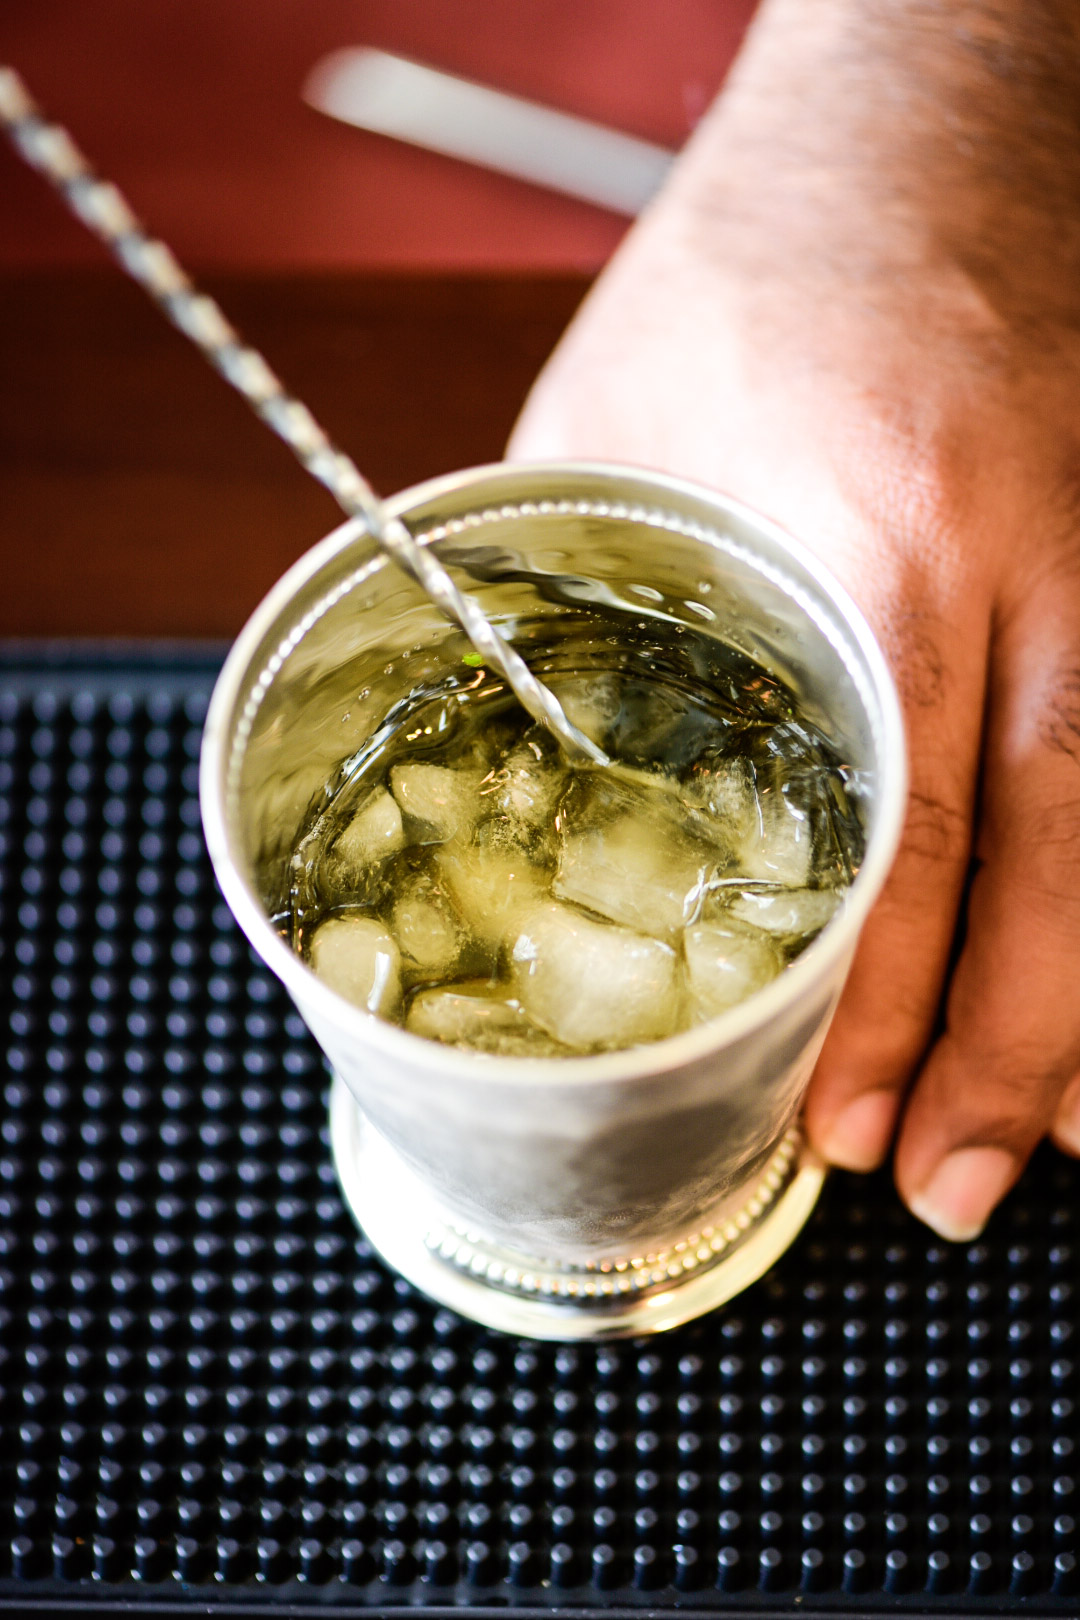 A look Inside the mint julep cup